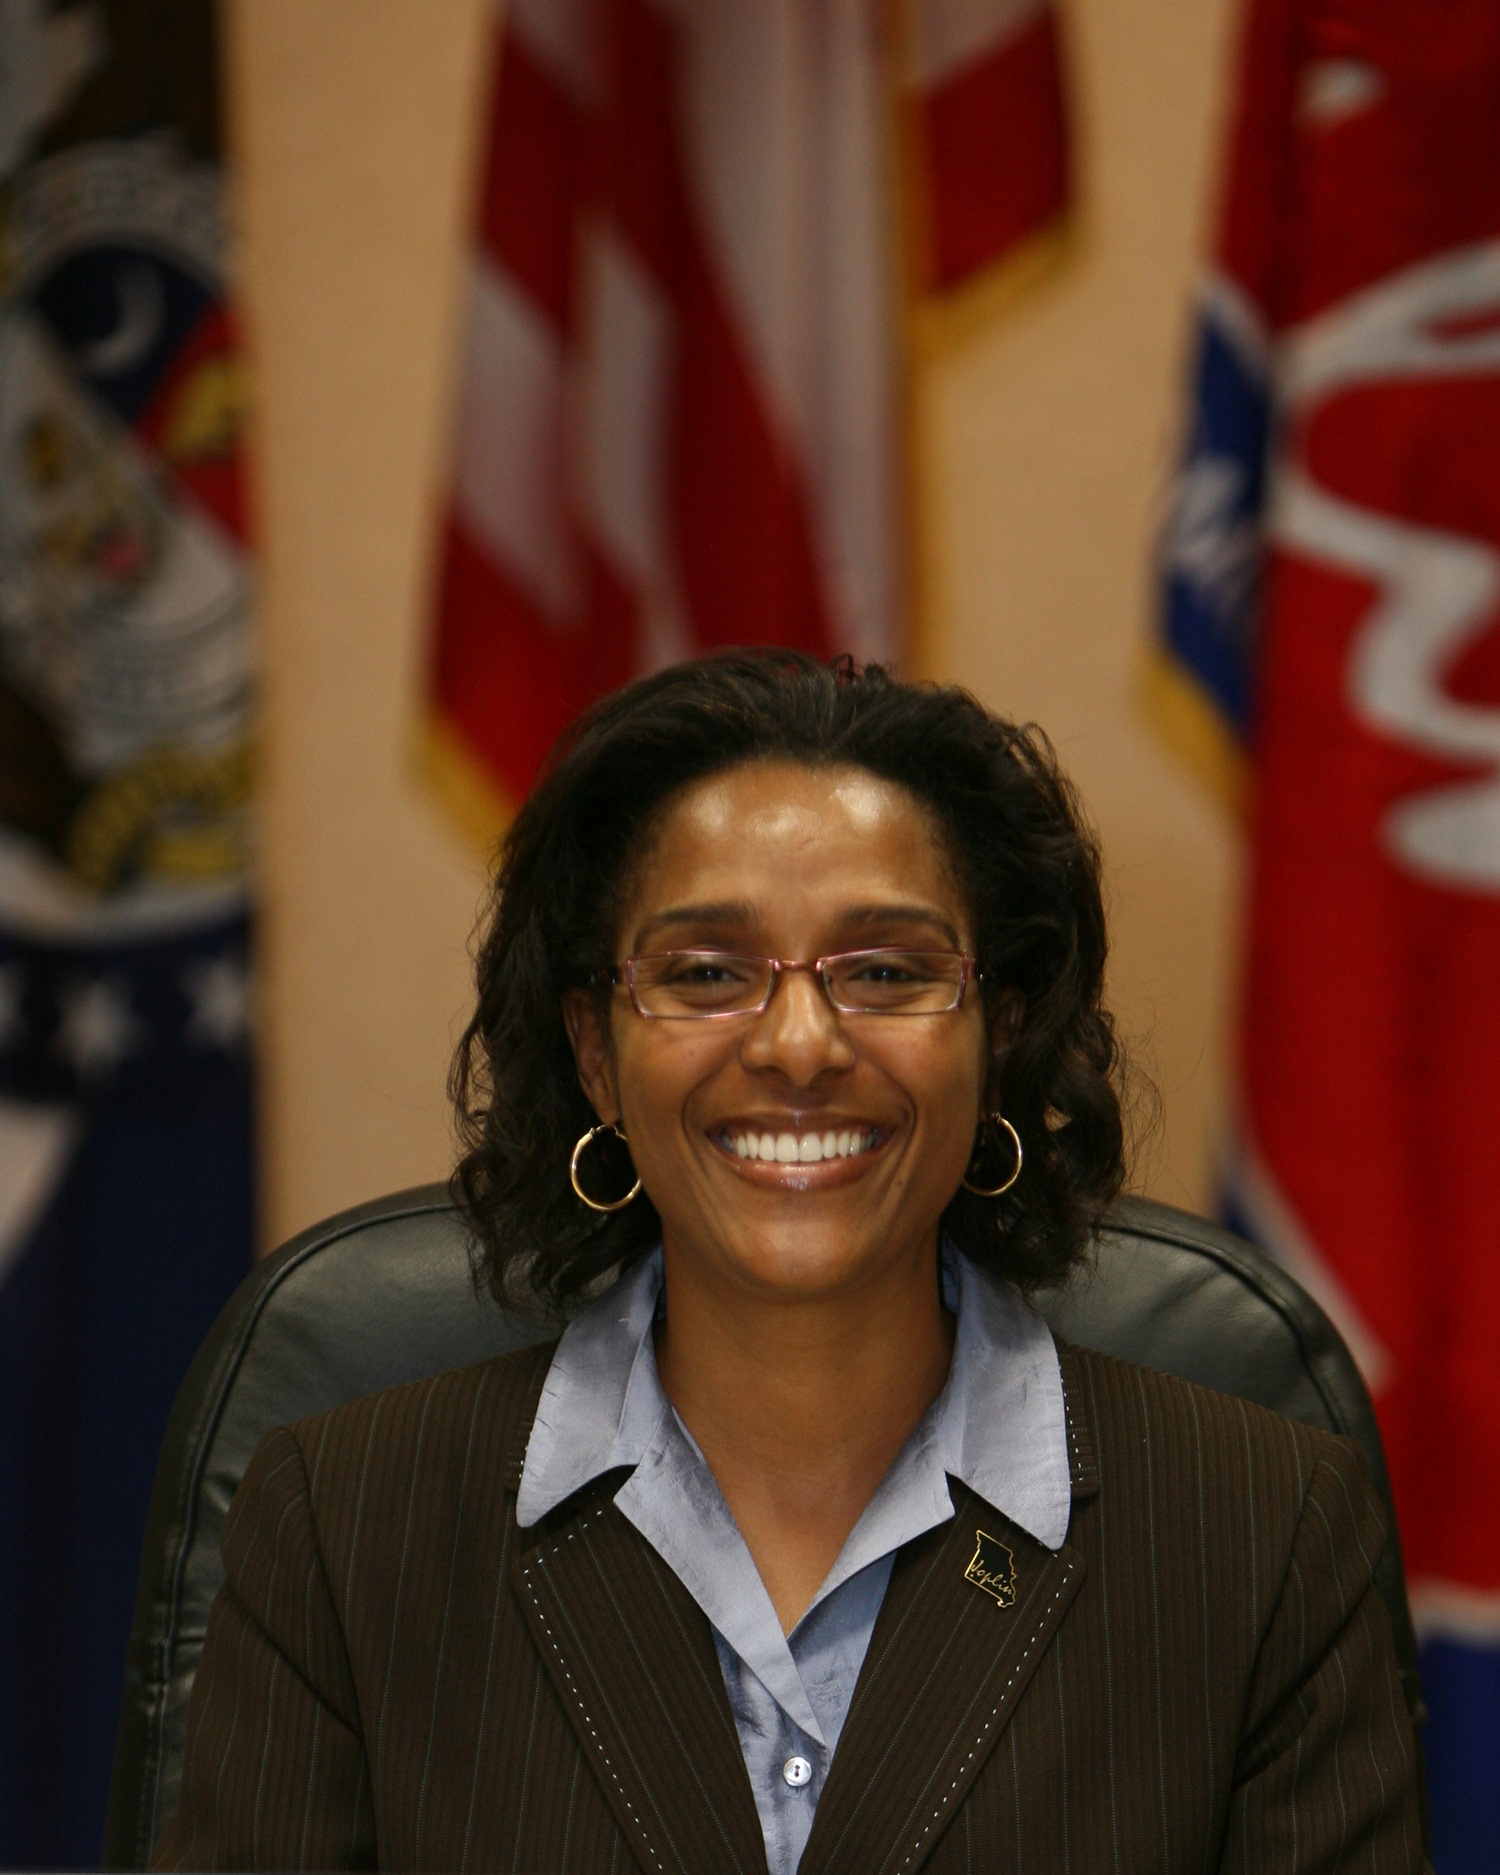 Mayor Melodee Colbert-Kean